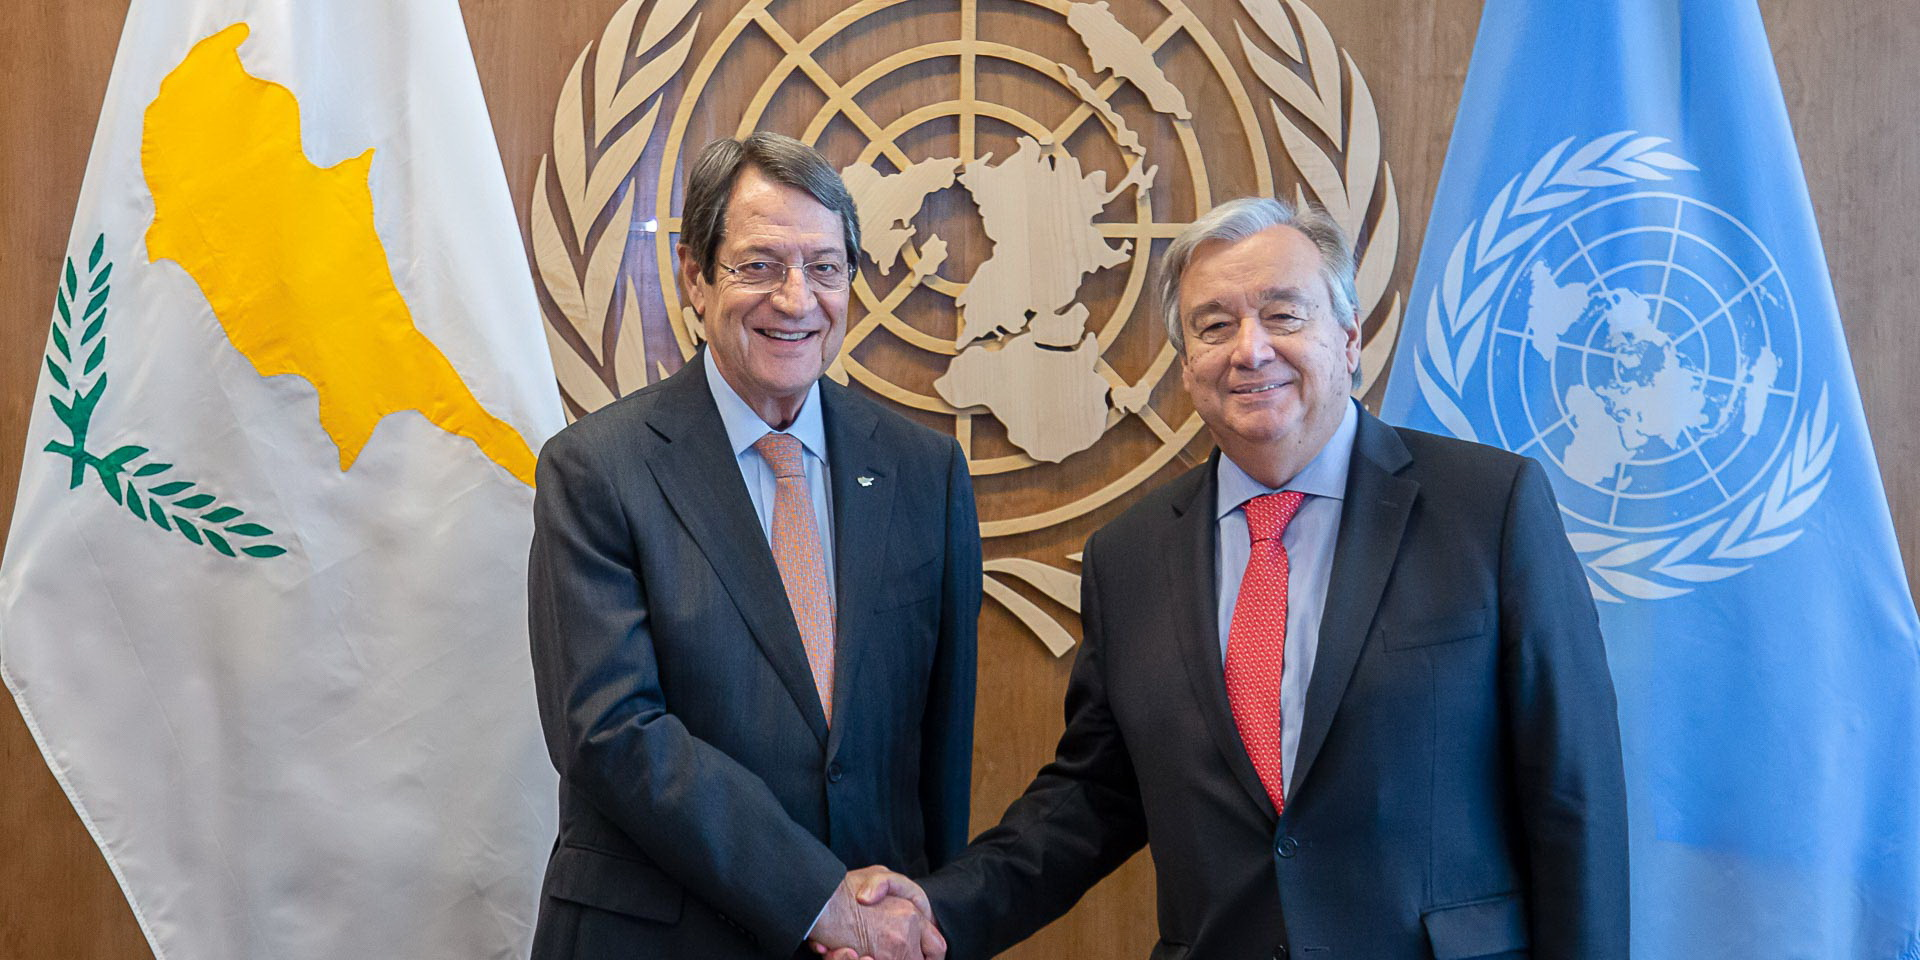 Cyprus: President Anastasiades received the letter-invitation of the UN Secretary General for the informal 5 + 1 meeting